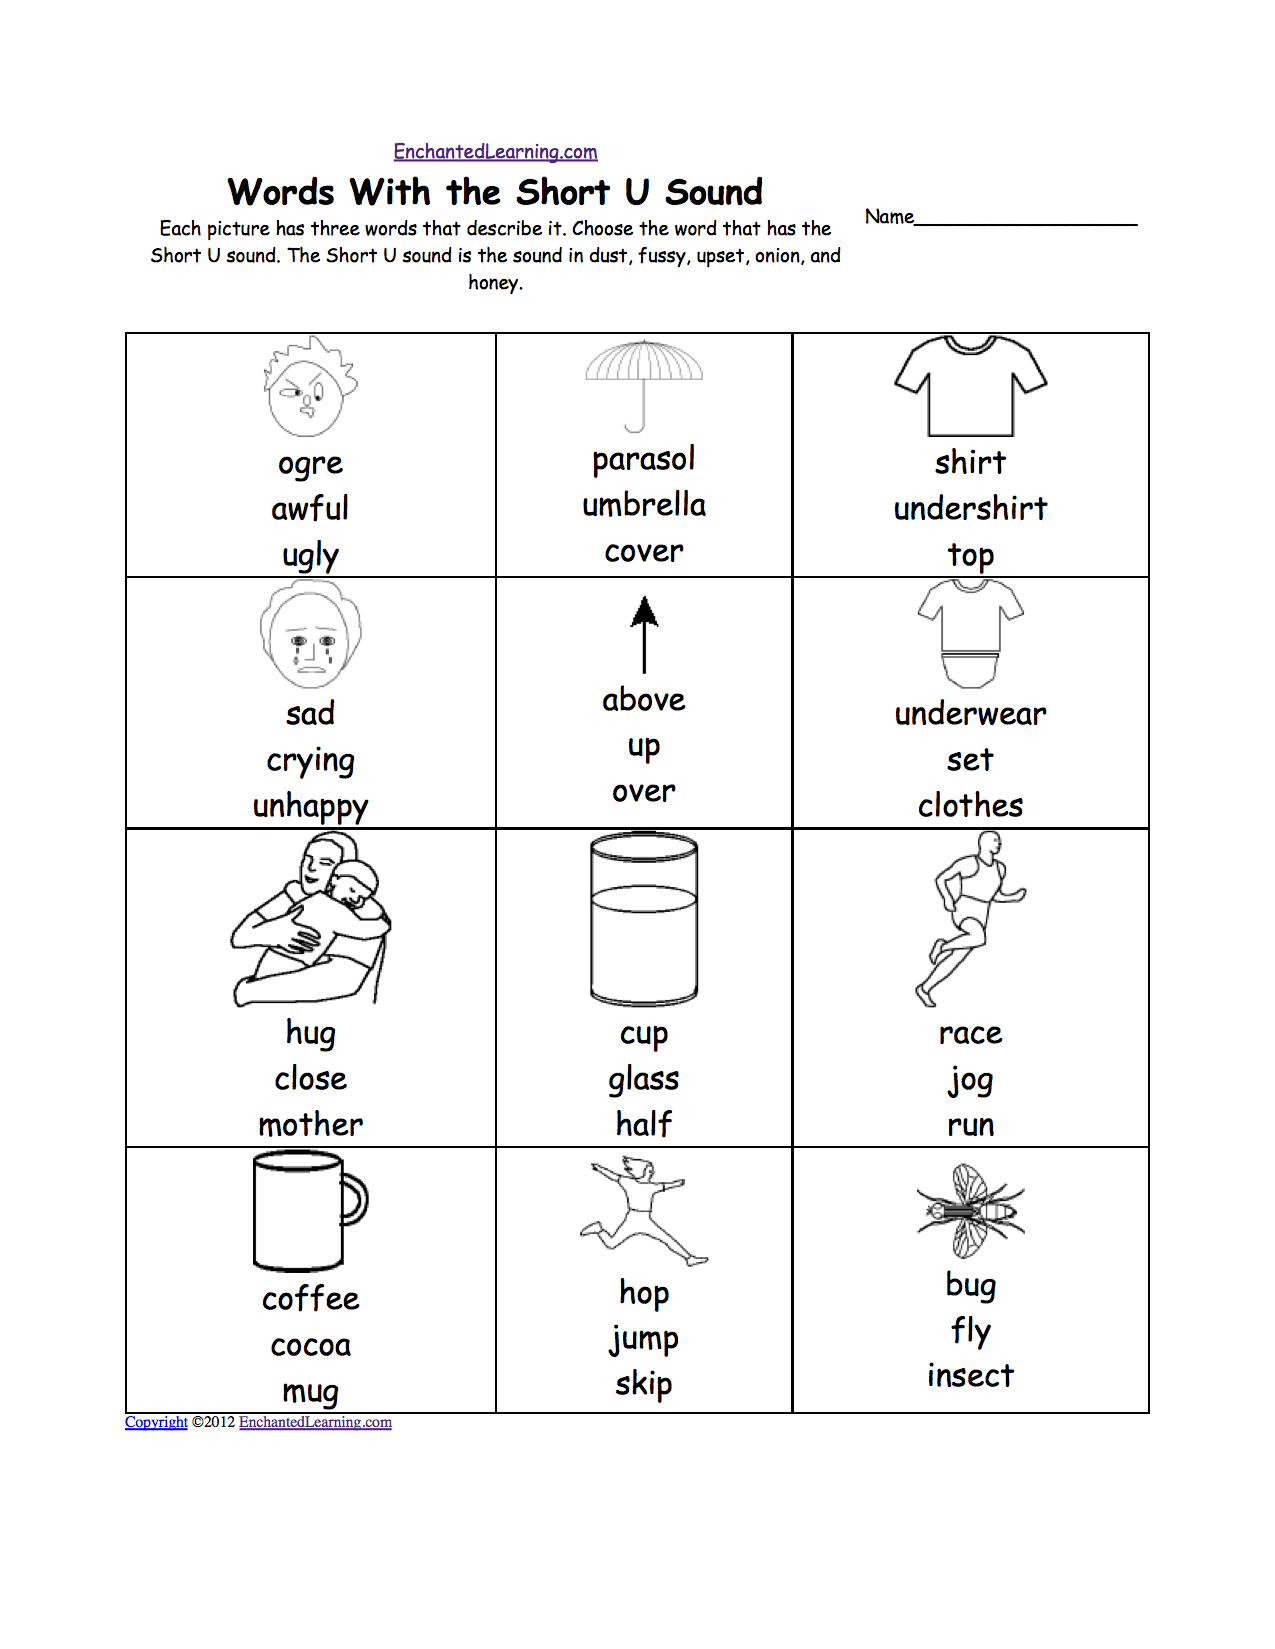 Worksheet Letter U Words For Preschool short u alphabet activities at enchantedlearning com each picture has three words that describe it choose the word sound is u